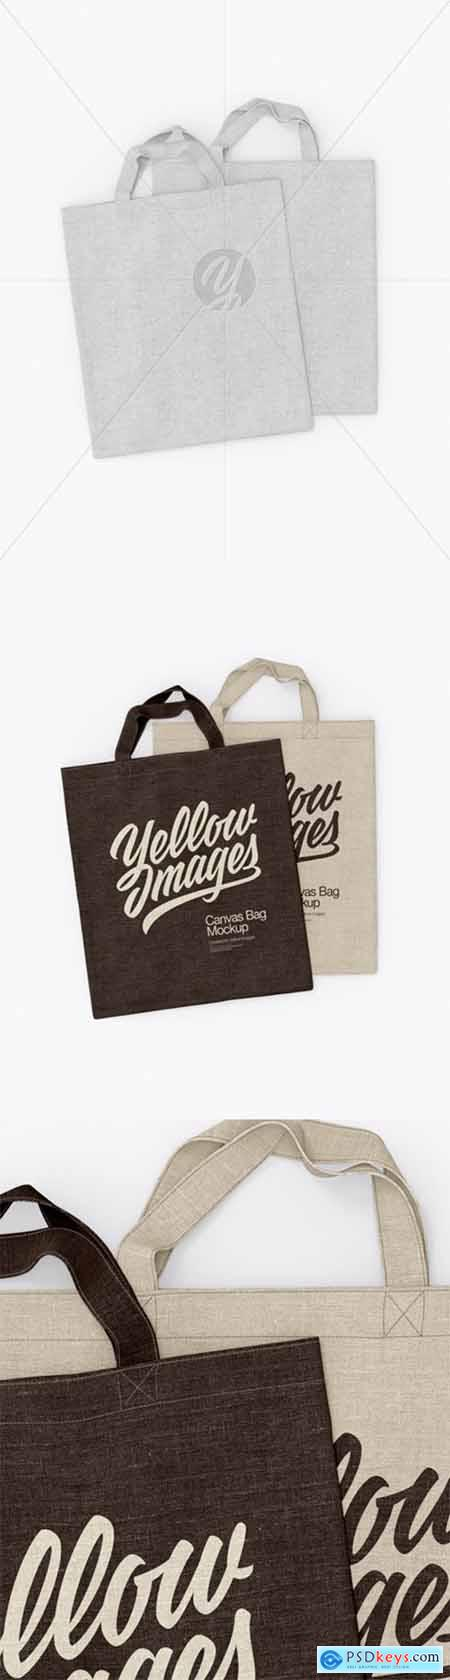 Two Canvas Bags Mockup - Top View 24888